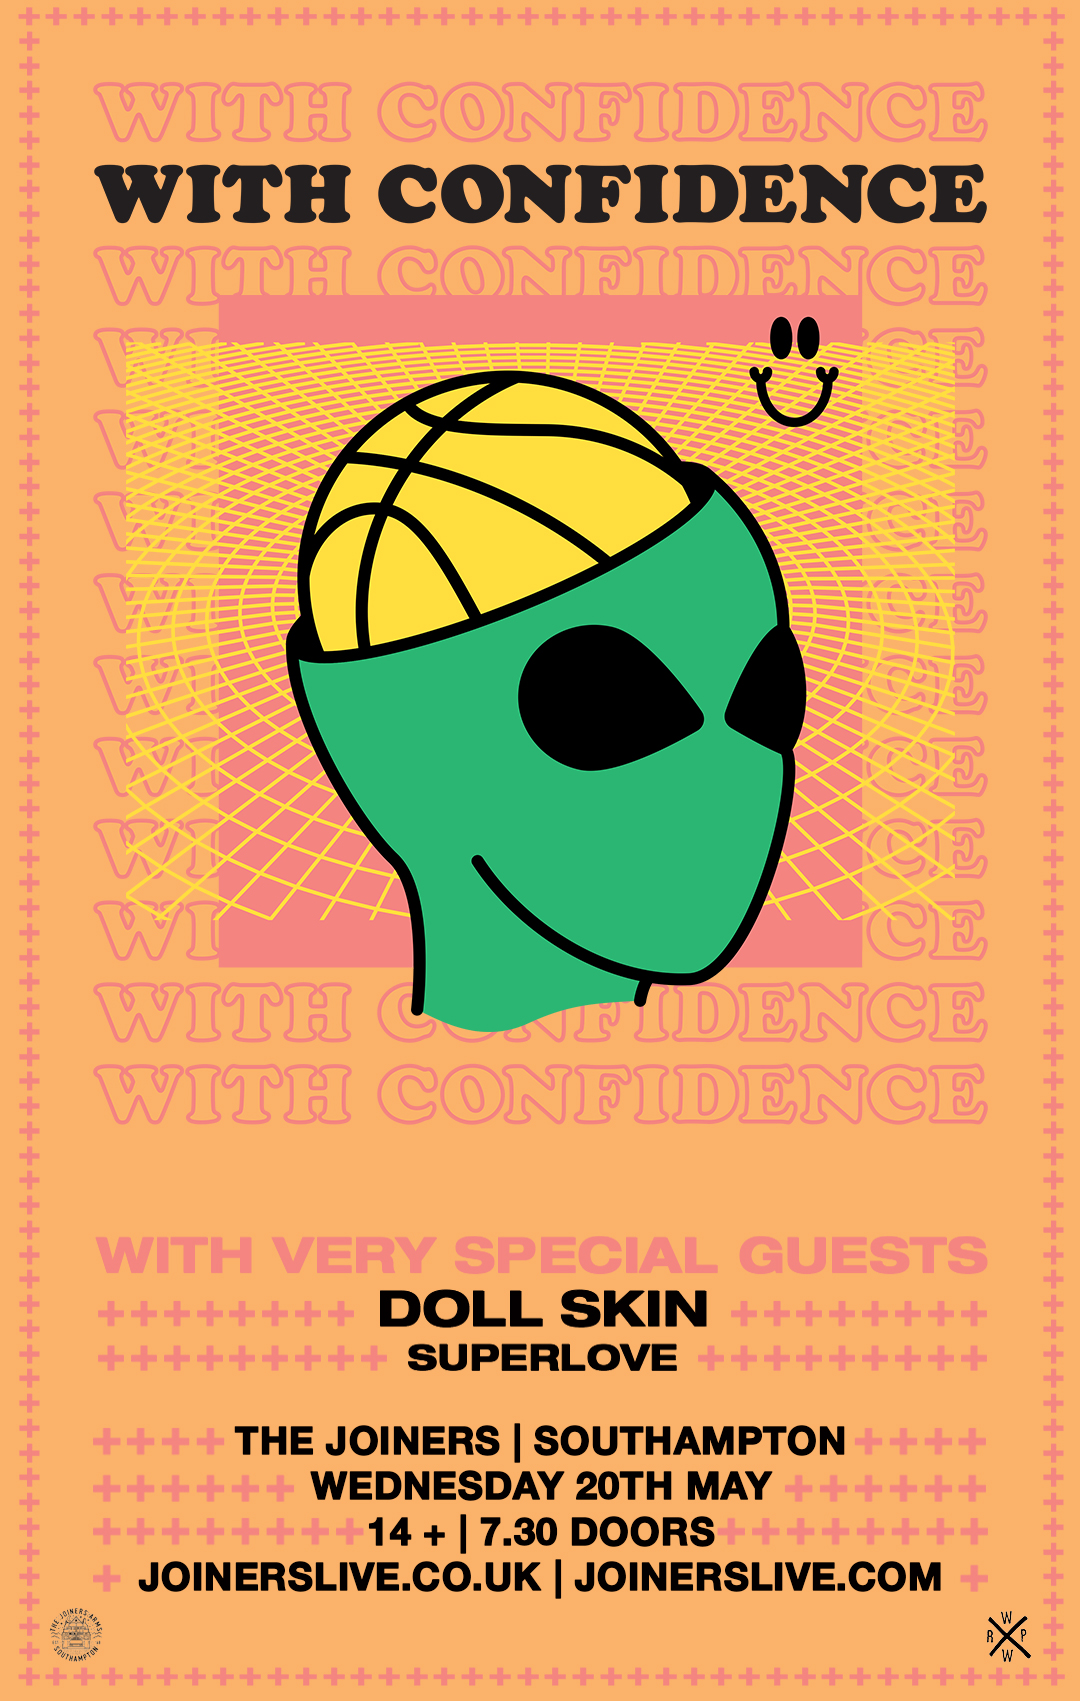 WITH CONFIDENCE + DOLL SKIN